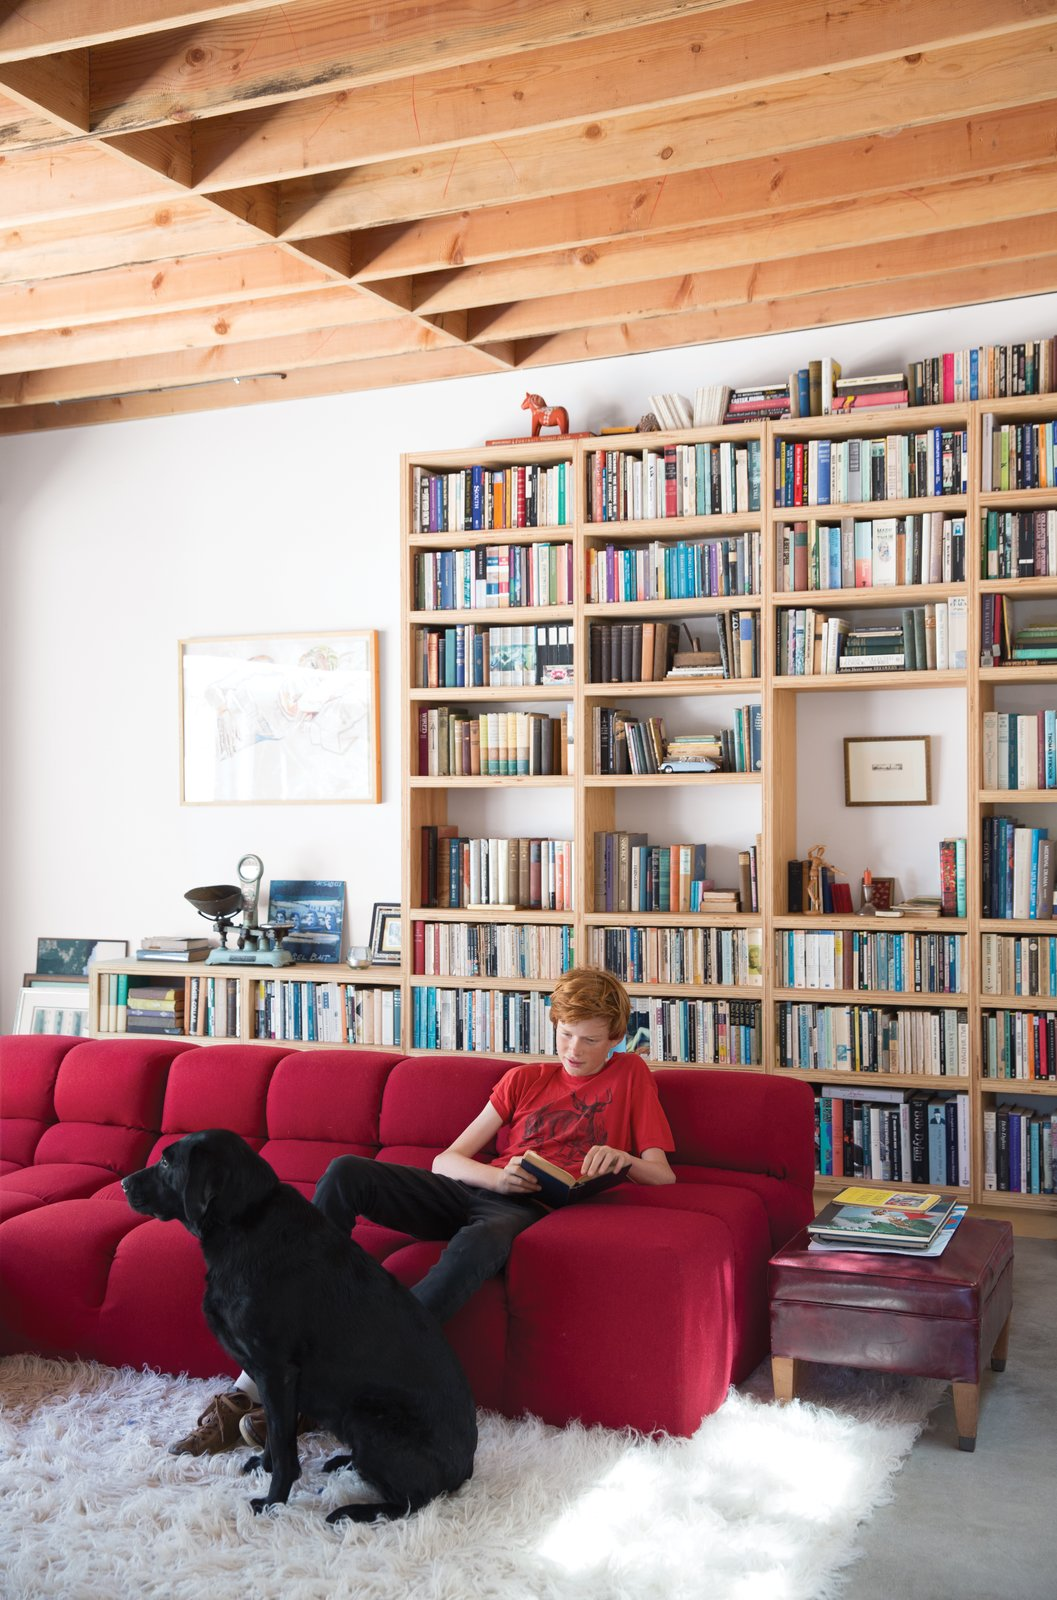 Living Room, Sofa, Bookcase, and Concrete Floor Wes Mahony lounges on a Tufty-Time sofa by Patricia Urquiola for B&B Italia in the family room that architect Emily Jagoda created for his family in their tree-damaged garage in Santa Monica.  Instances of Patricia Urquiola-Designed Pieces in Modern Homes by Zachary Edelson from The Garage That's as Fun as the Living Room